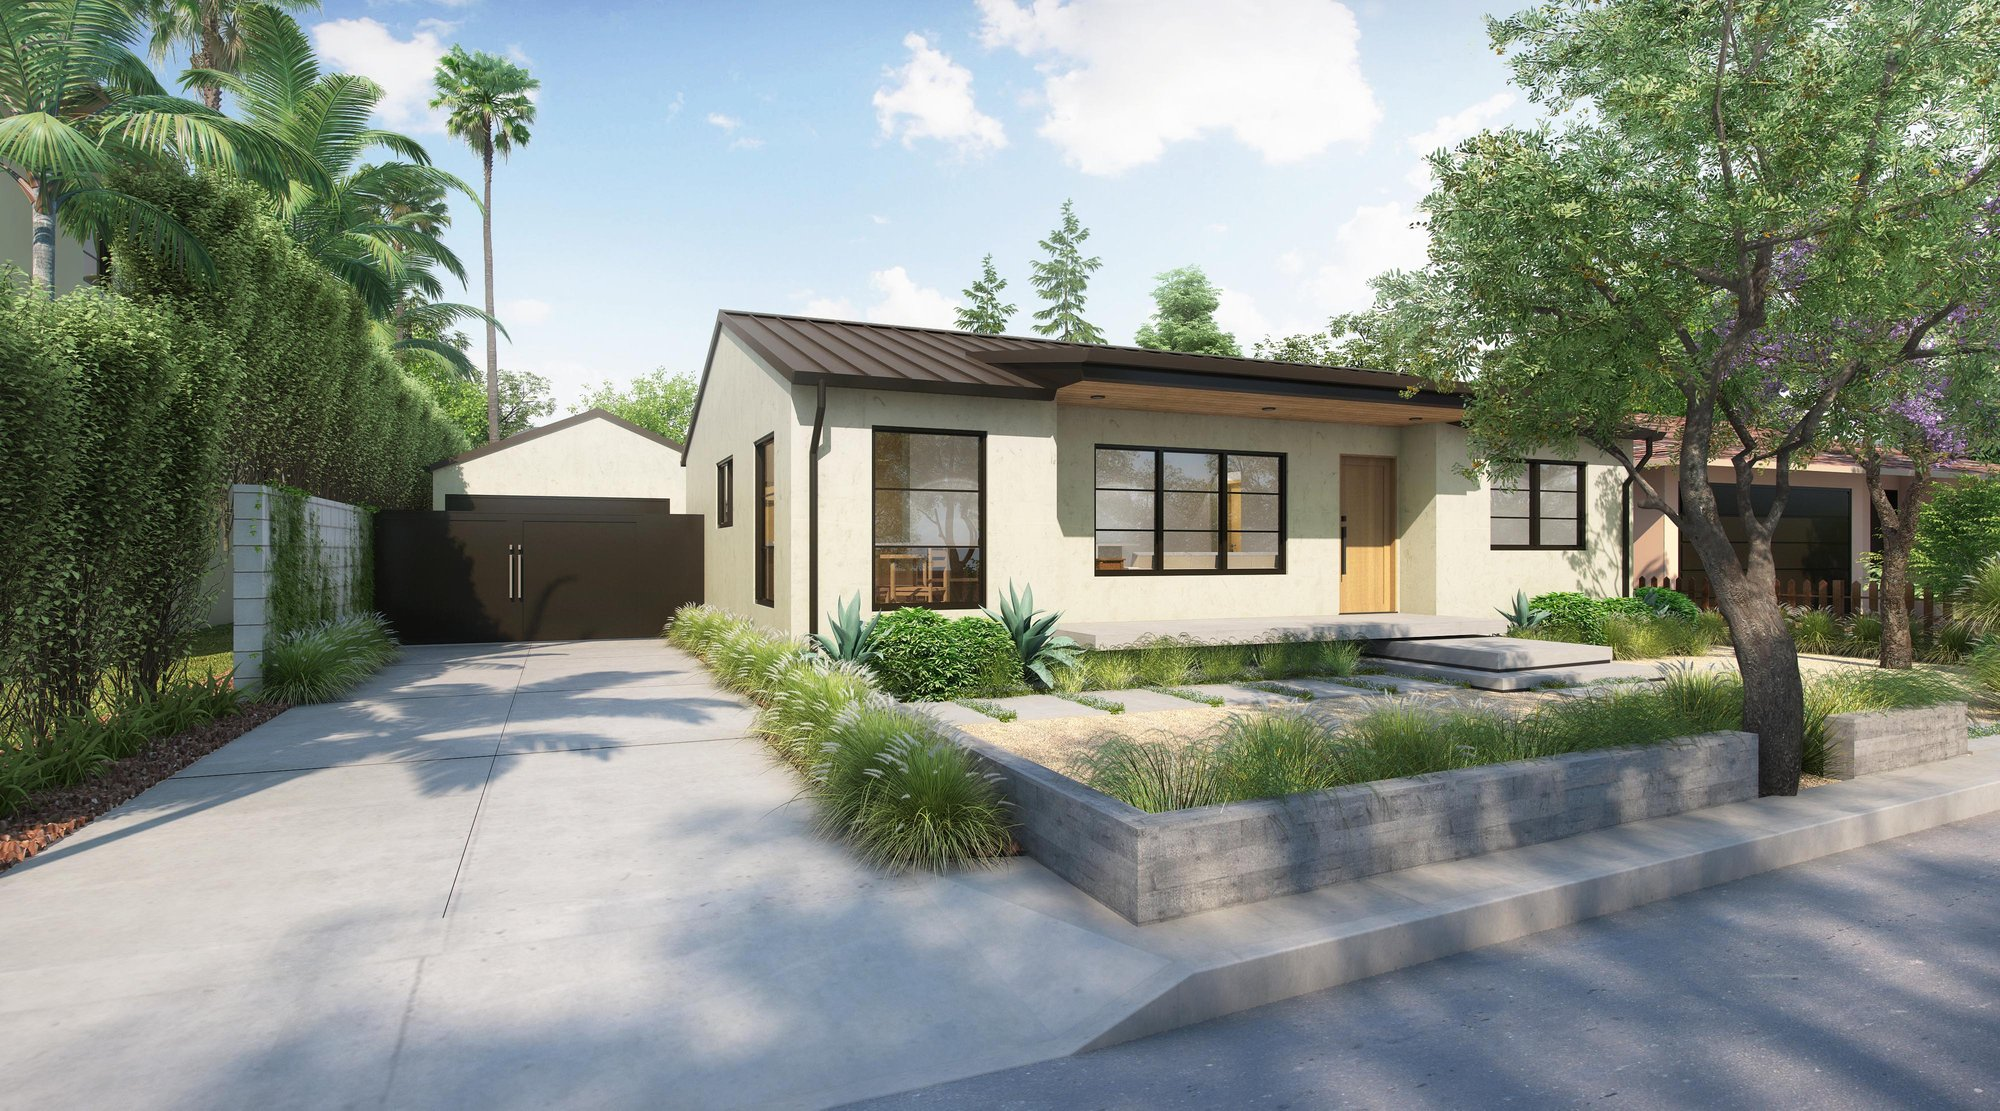 A newly refreshed California bungalow